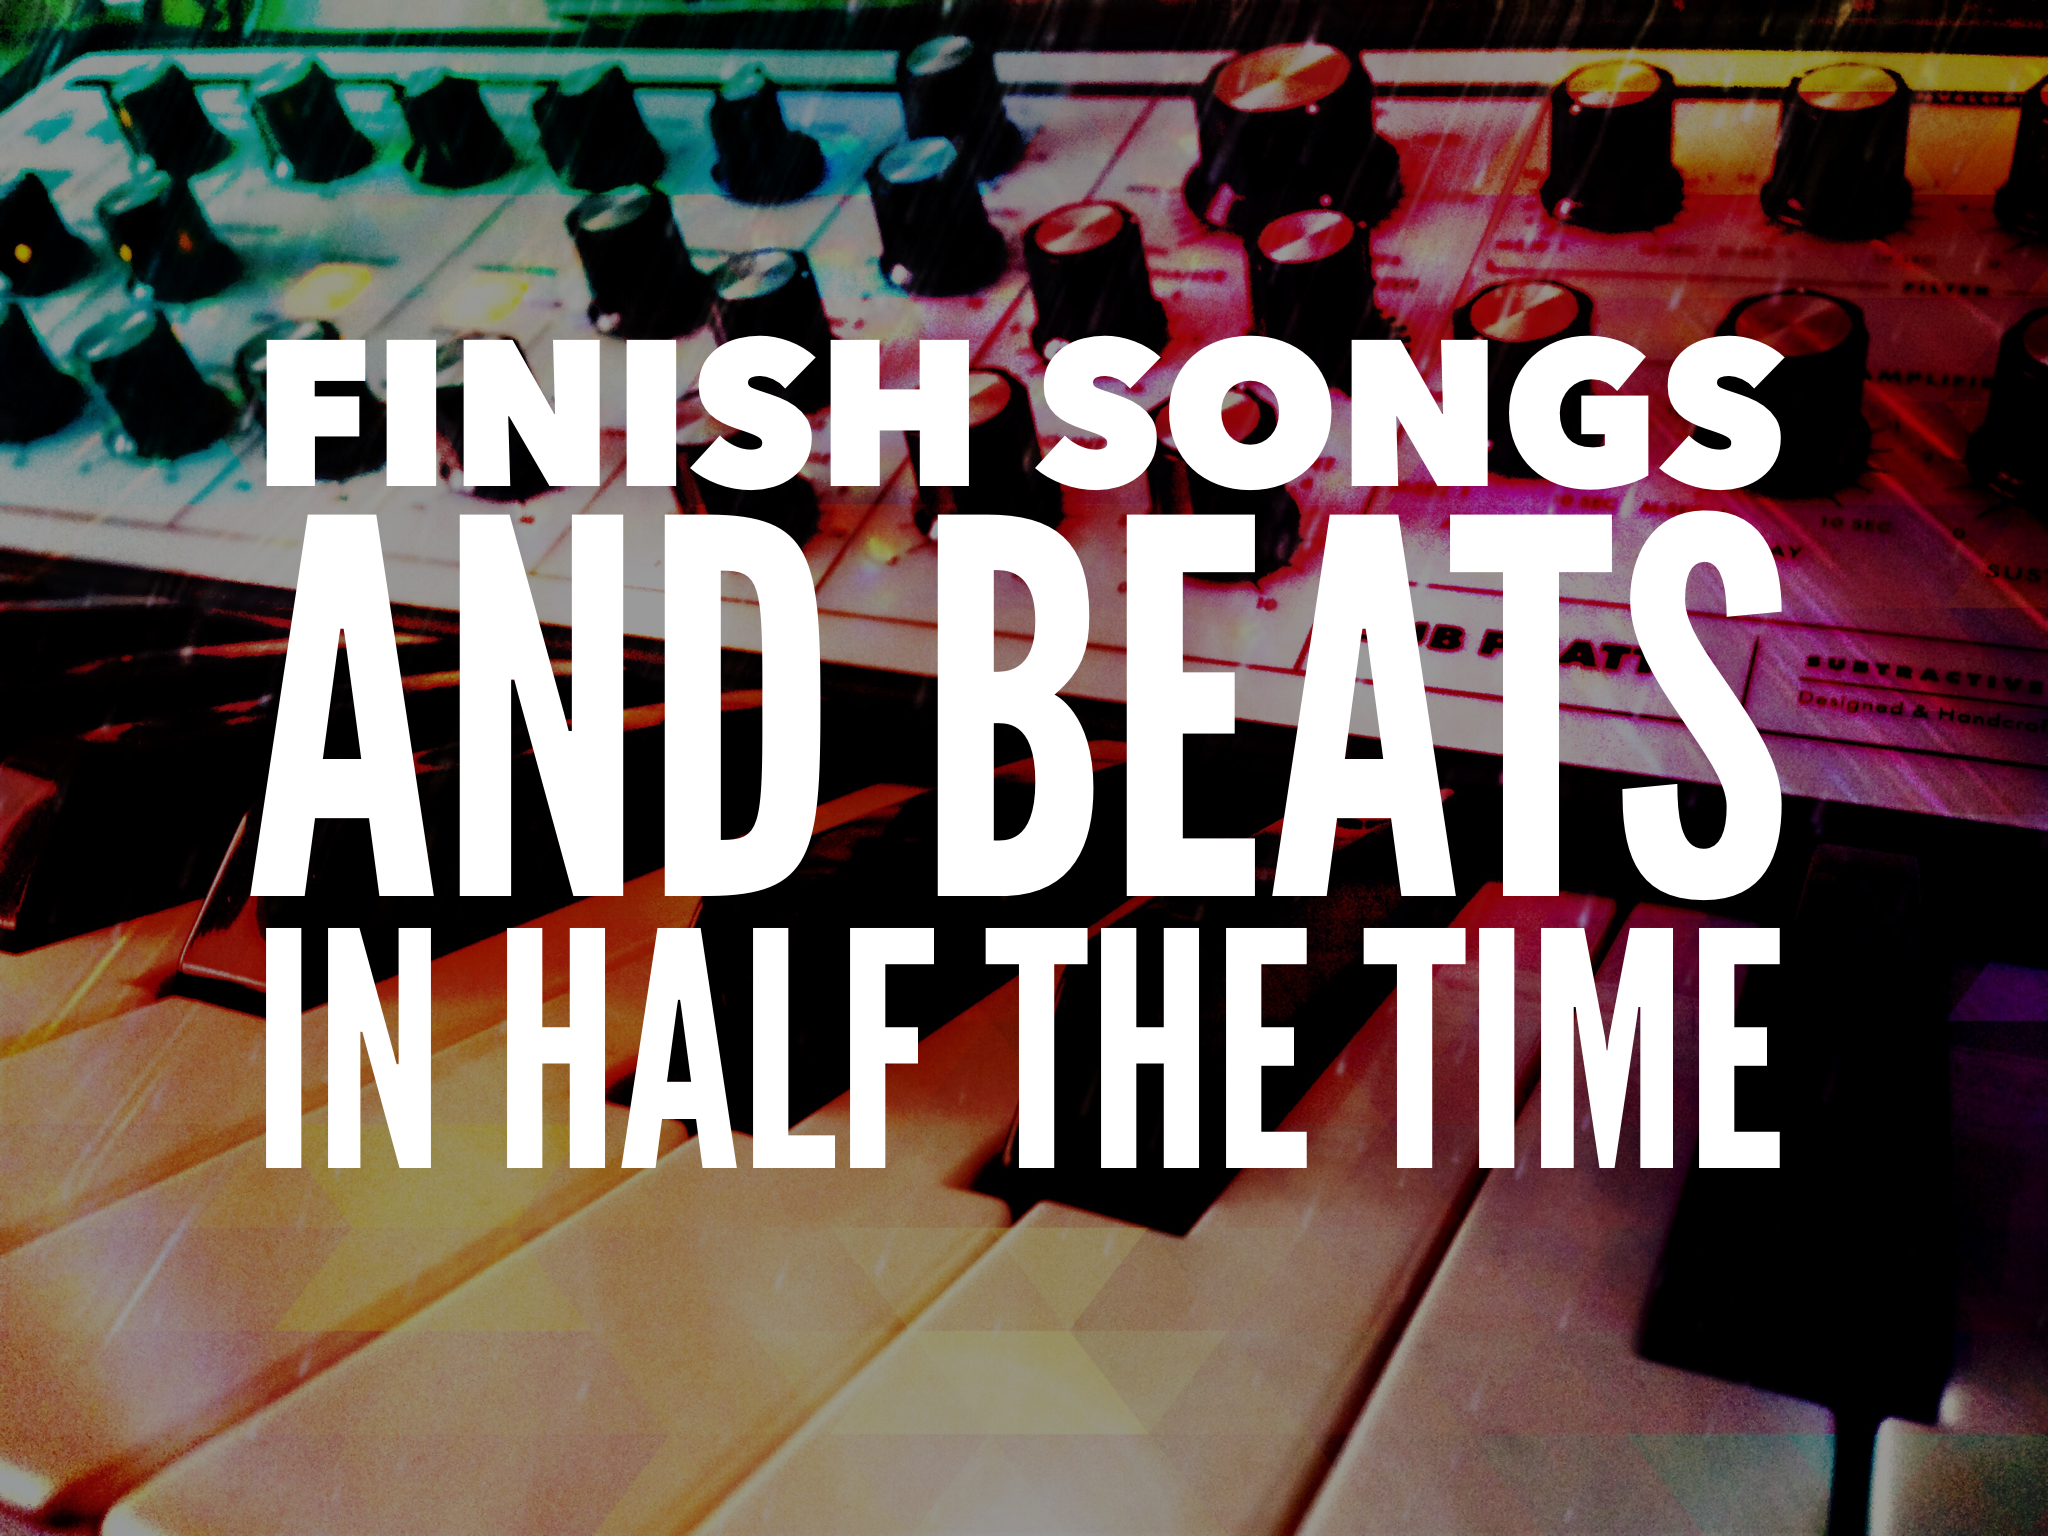 How To Finish A Song Or Beat In Half The Time